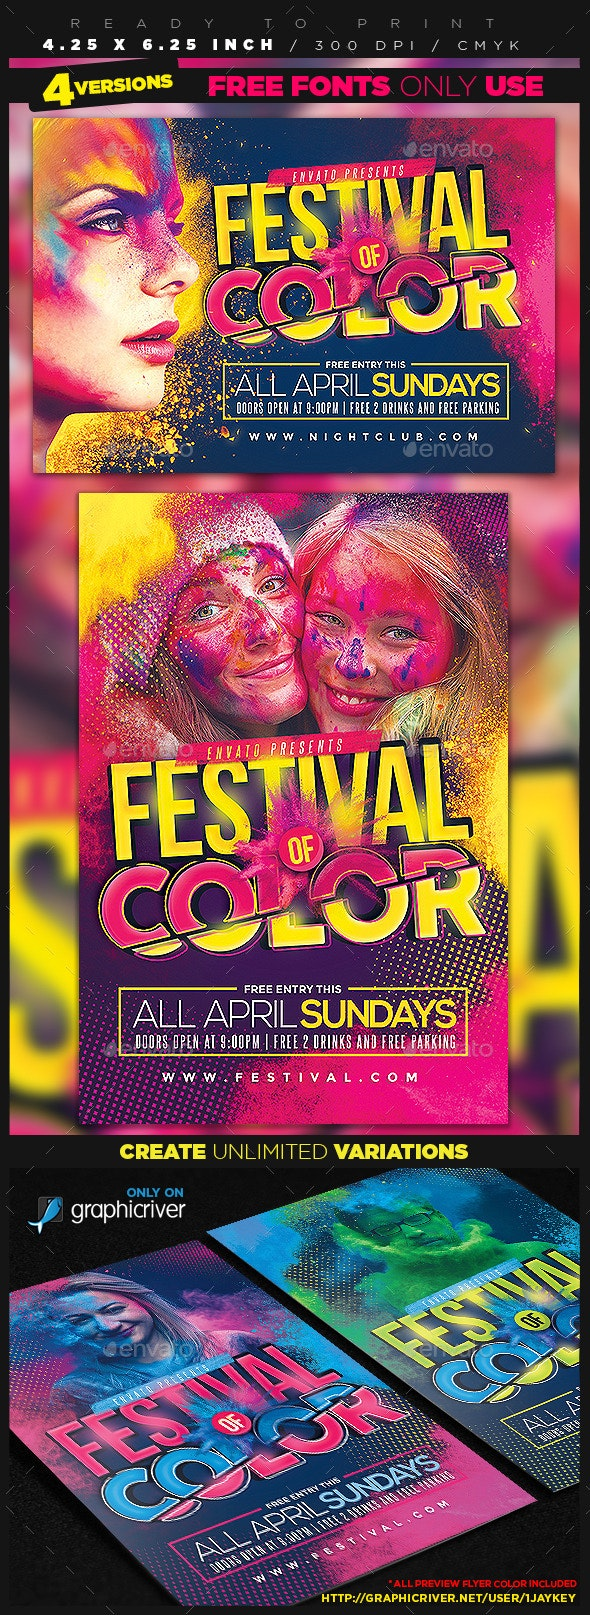 Festival of Color Event Flyer - Clubs & Parties Events